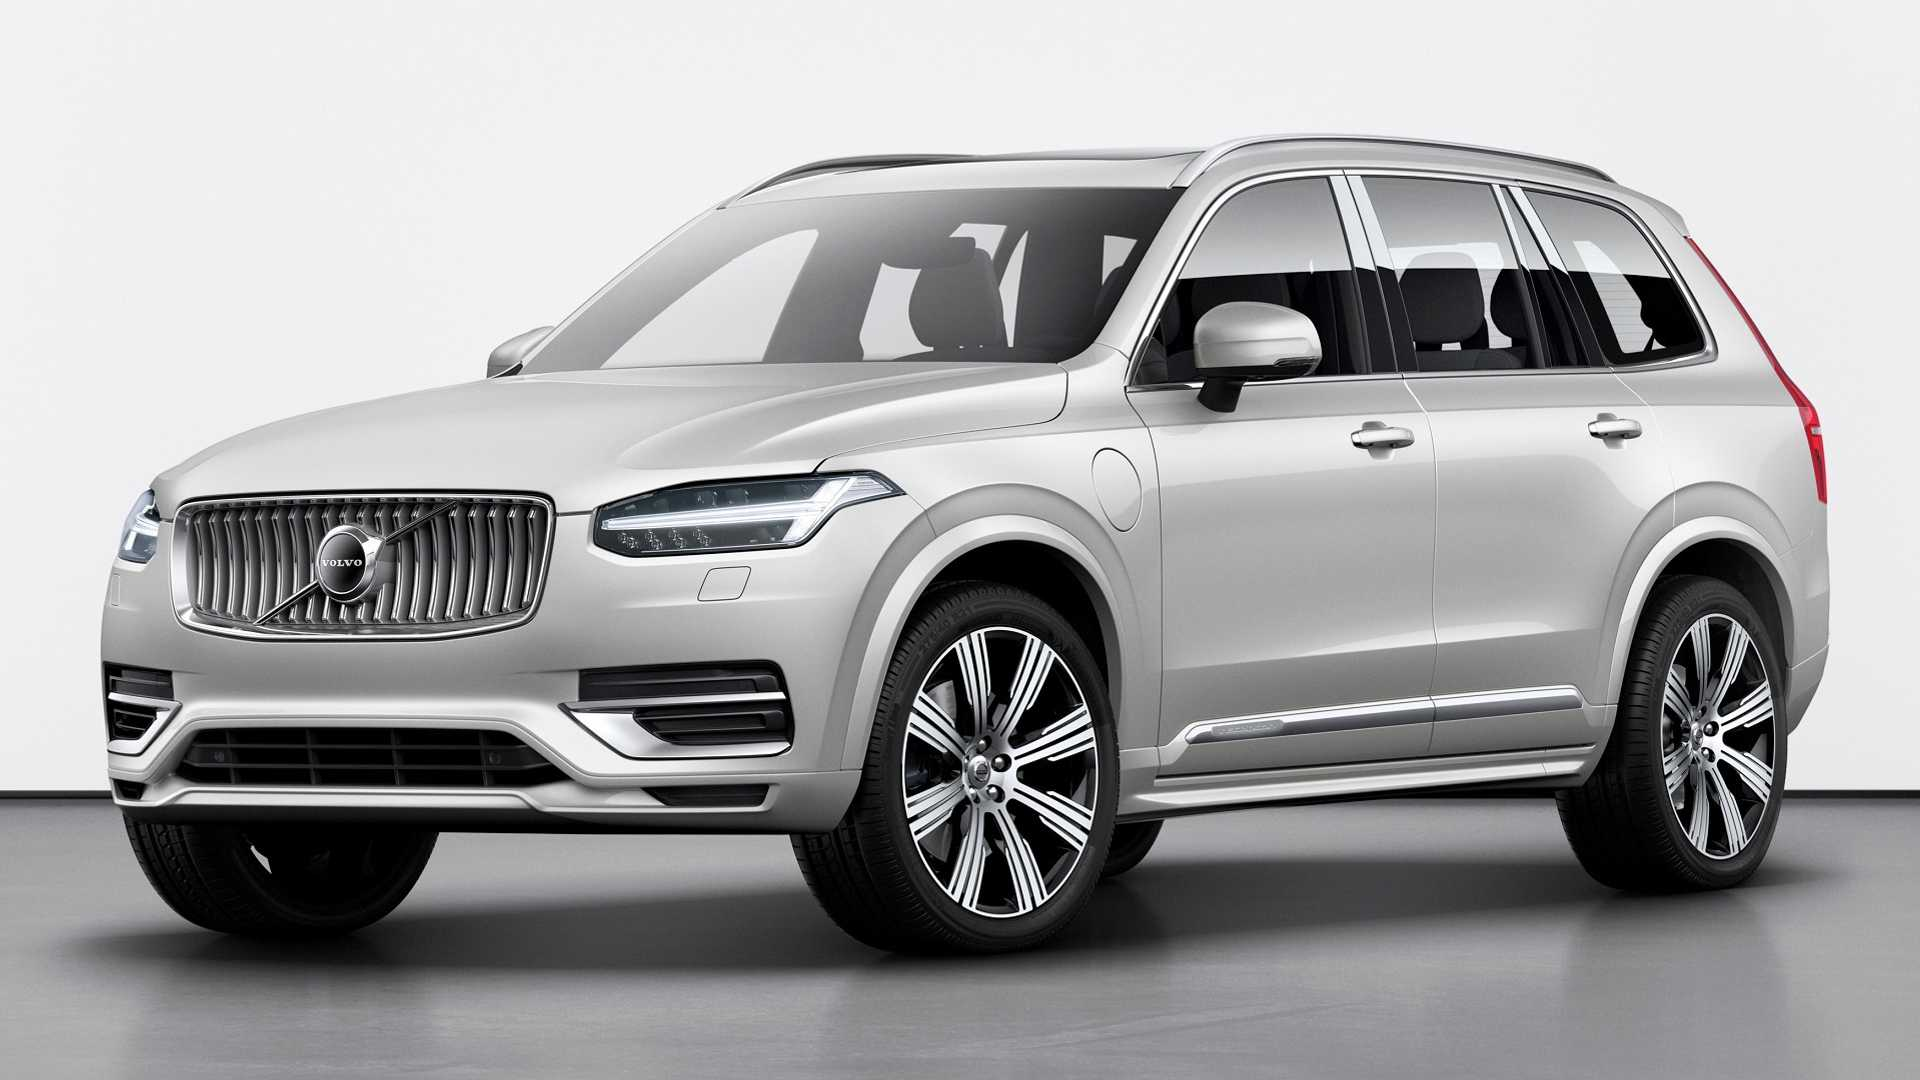 26 Concept of Volvo S90 2020 Facelift Picture by Volvo S90 2020 Facelift